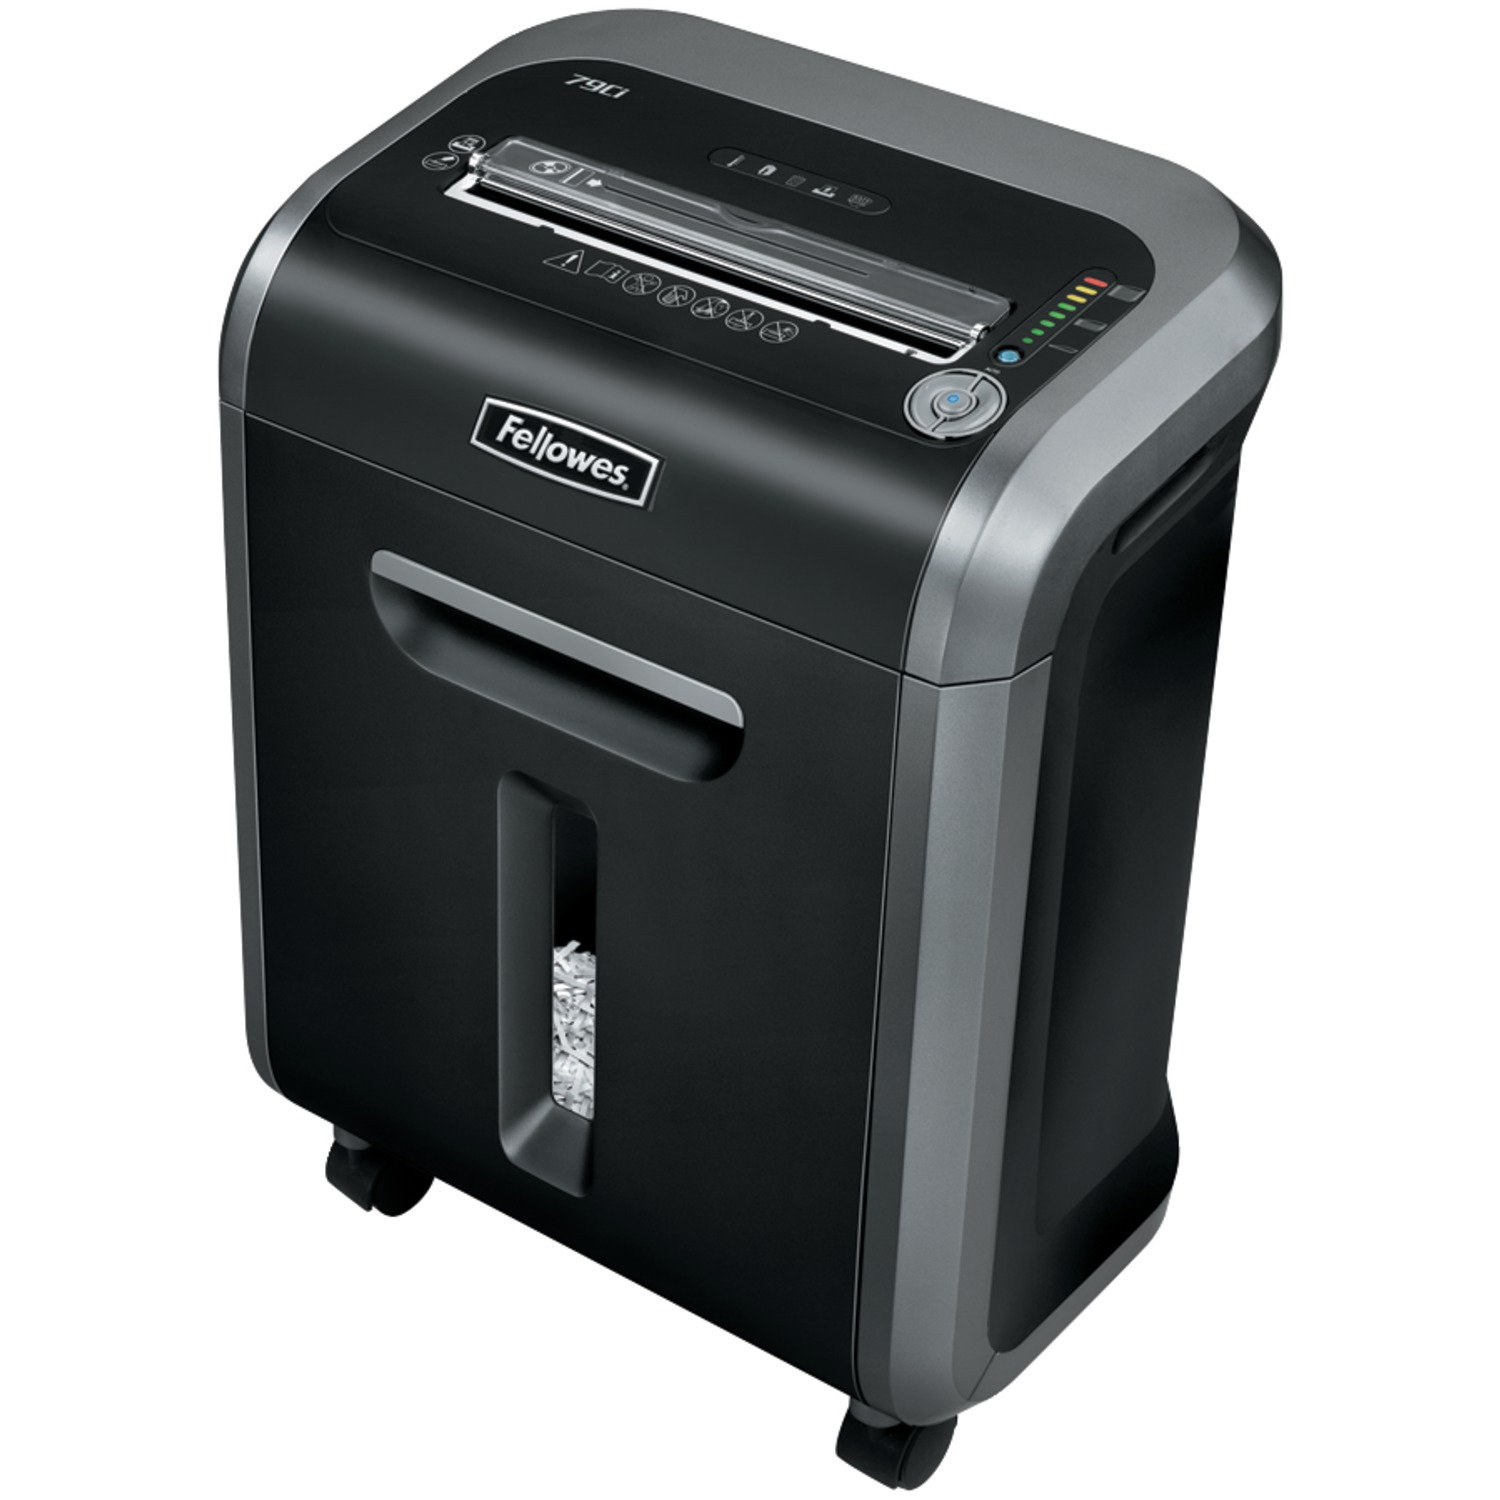 Image for Fellowes Powershred 79Ci - Shredder from Circuit City